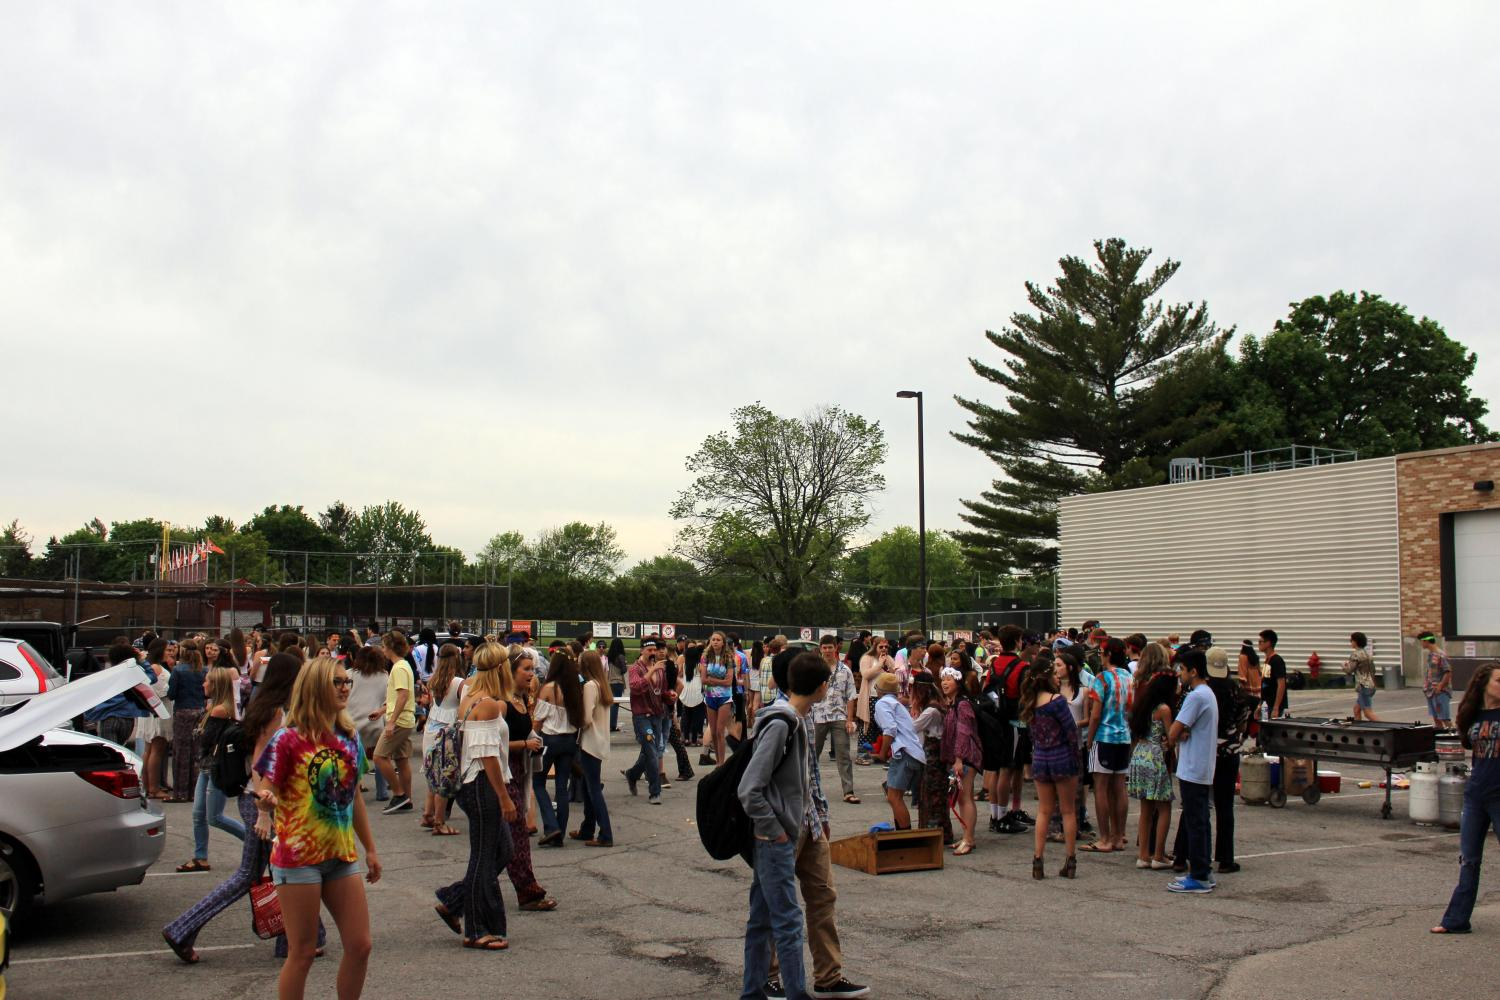 The+tailgate+brings+the+incoming+senior+class+together+as+a+way+to+kick+off+the+final+year+of+high+school.++Last+year+the+theme+was+Woodstock%2C+but+this+year+it+will+be+USA.